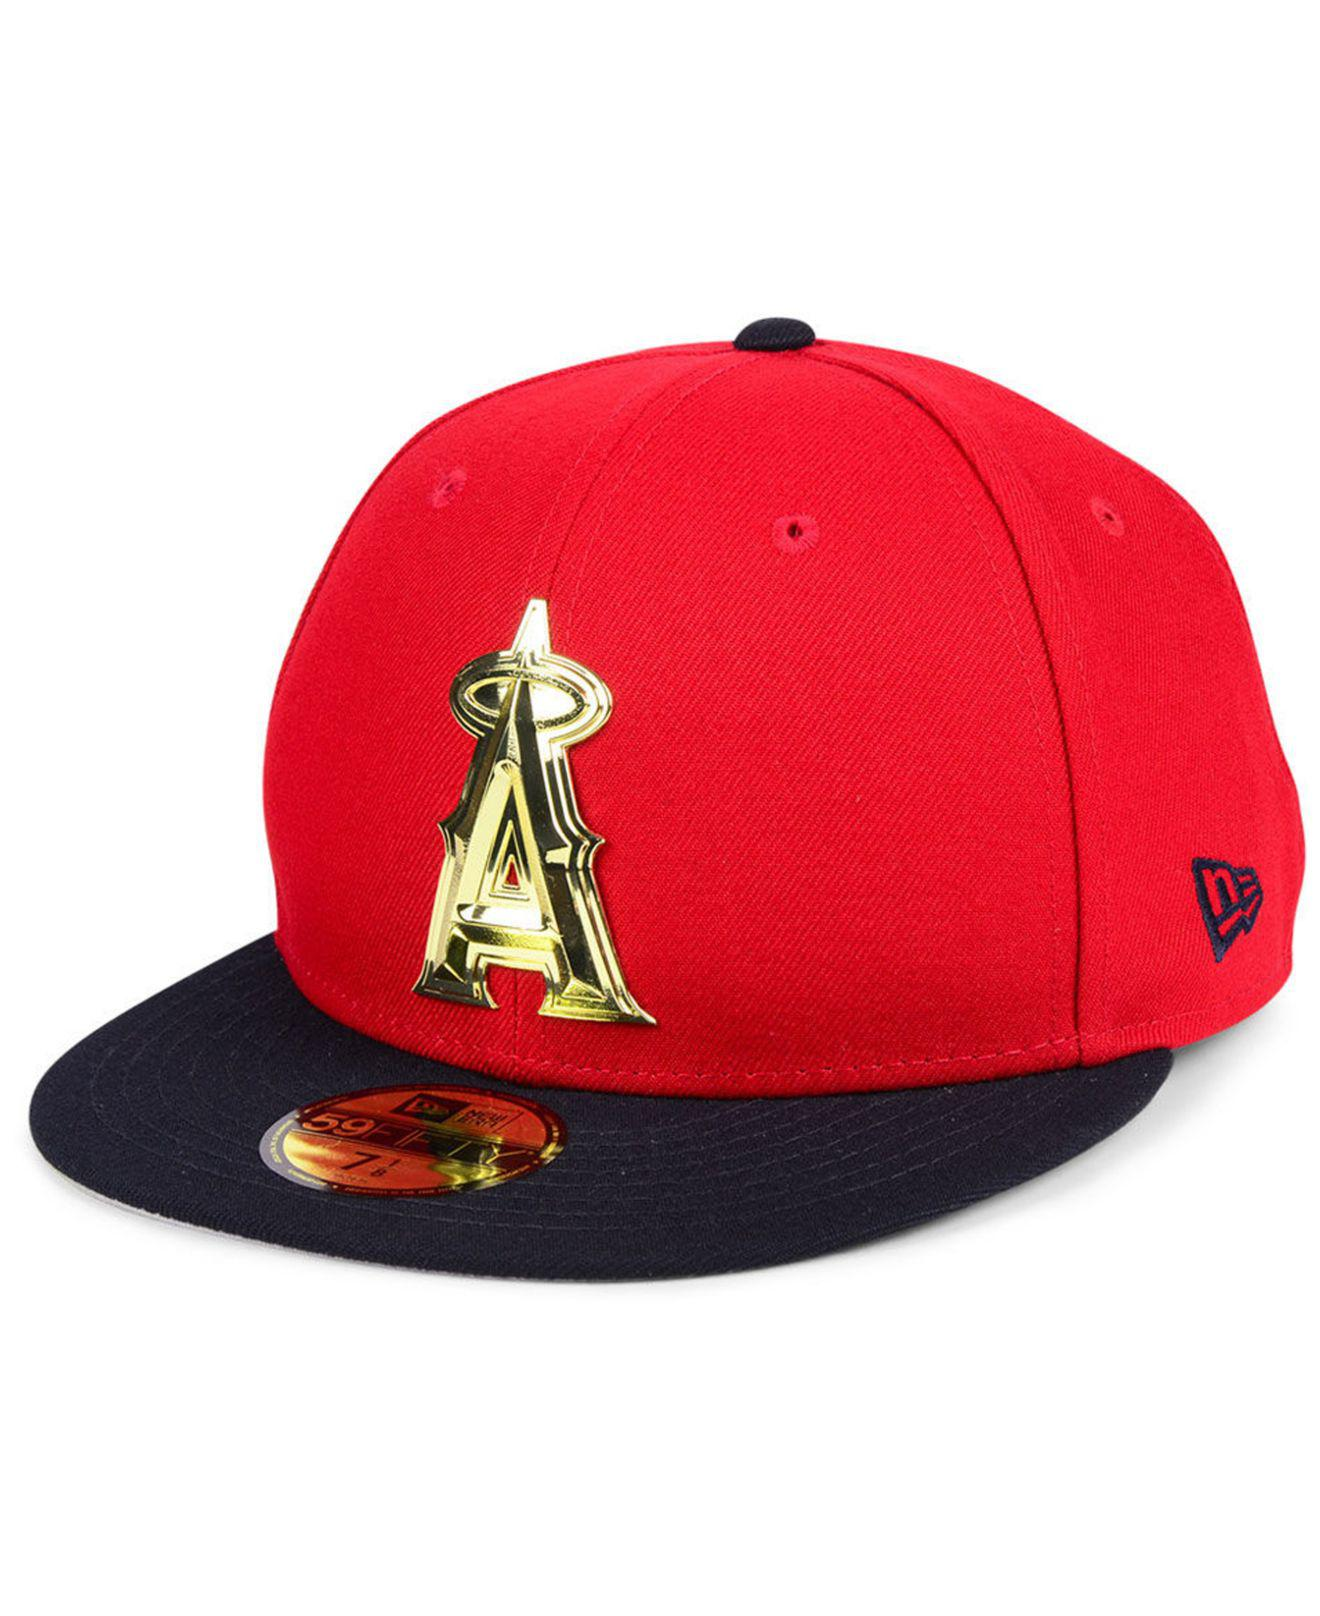 brand new 32d99 19f6f czech los angeles angels new era mlb coop banner patch 9twenty strapback cap  1a234 23210  italy ktz. mens red los angeles angels golden finish 59fifty  ...